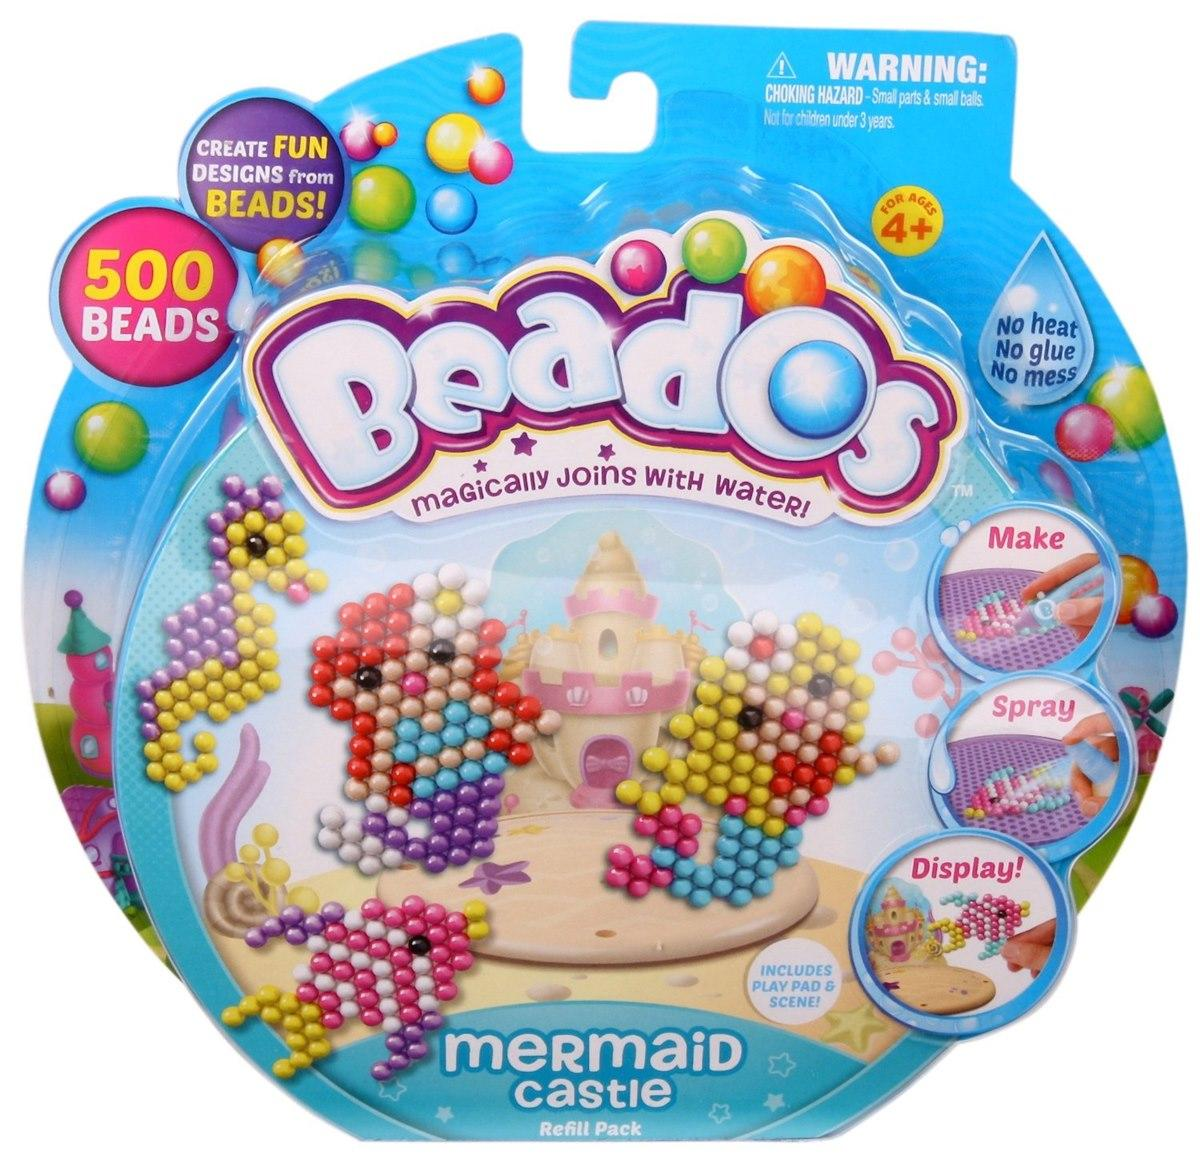 [Moose] Beados S1 Themed Refill Pack - Mermaid Castle